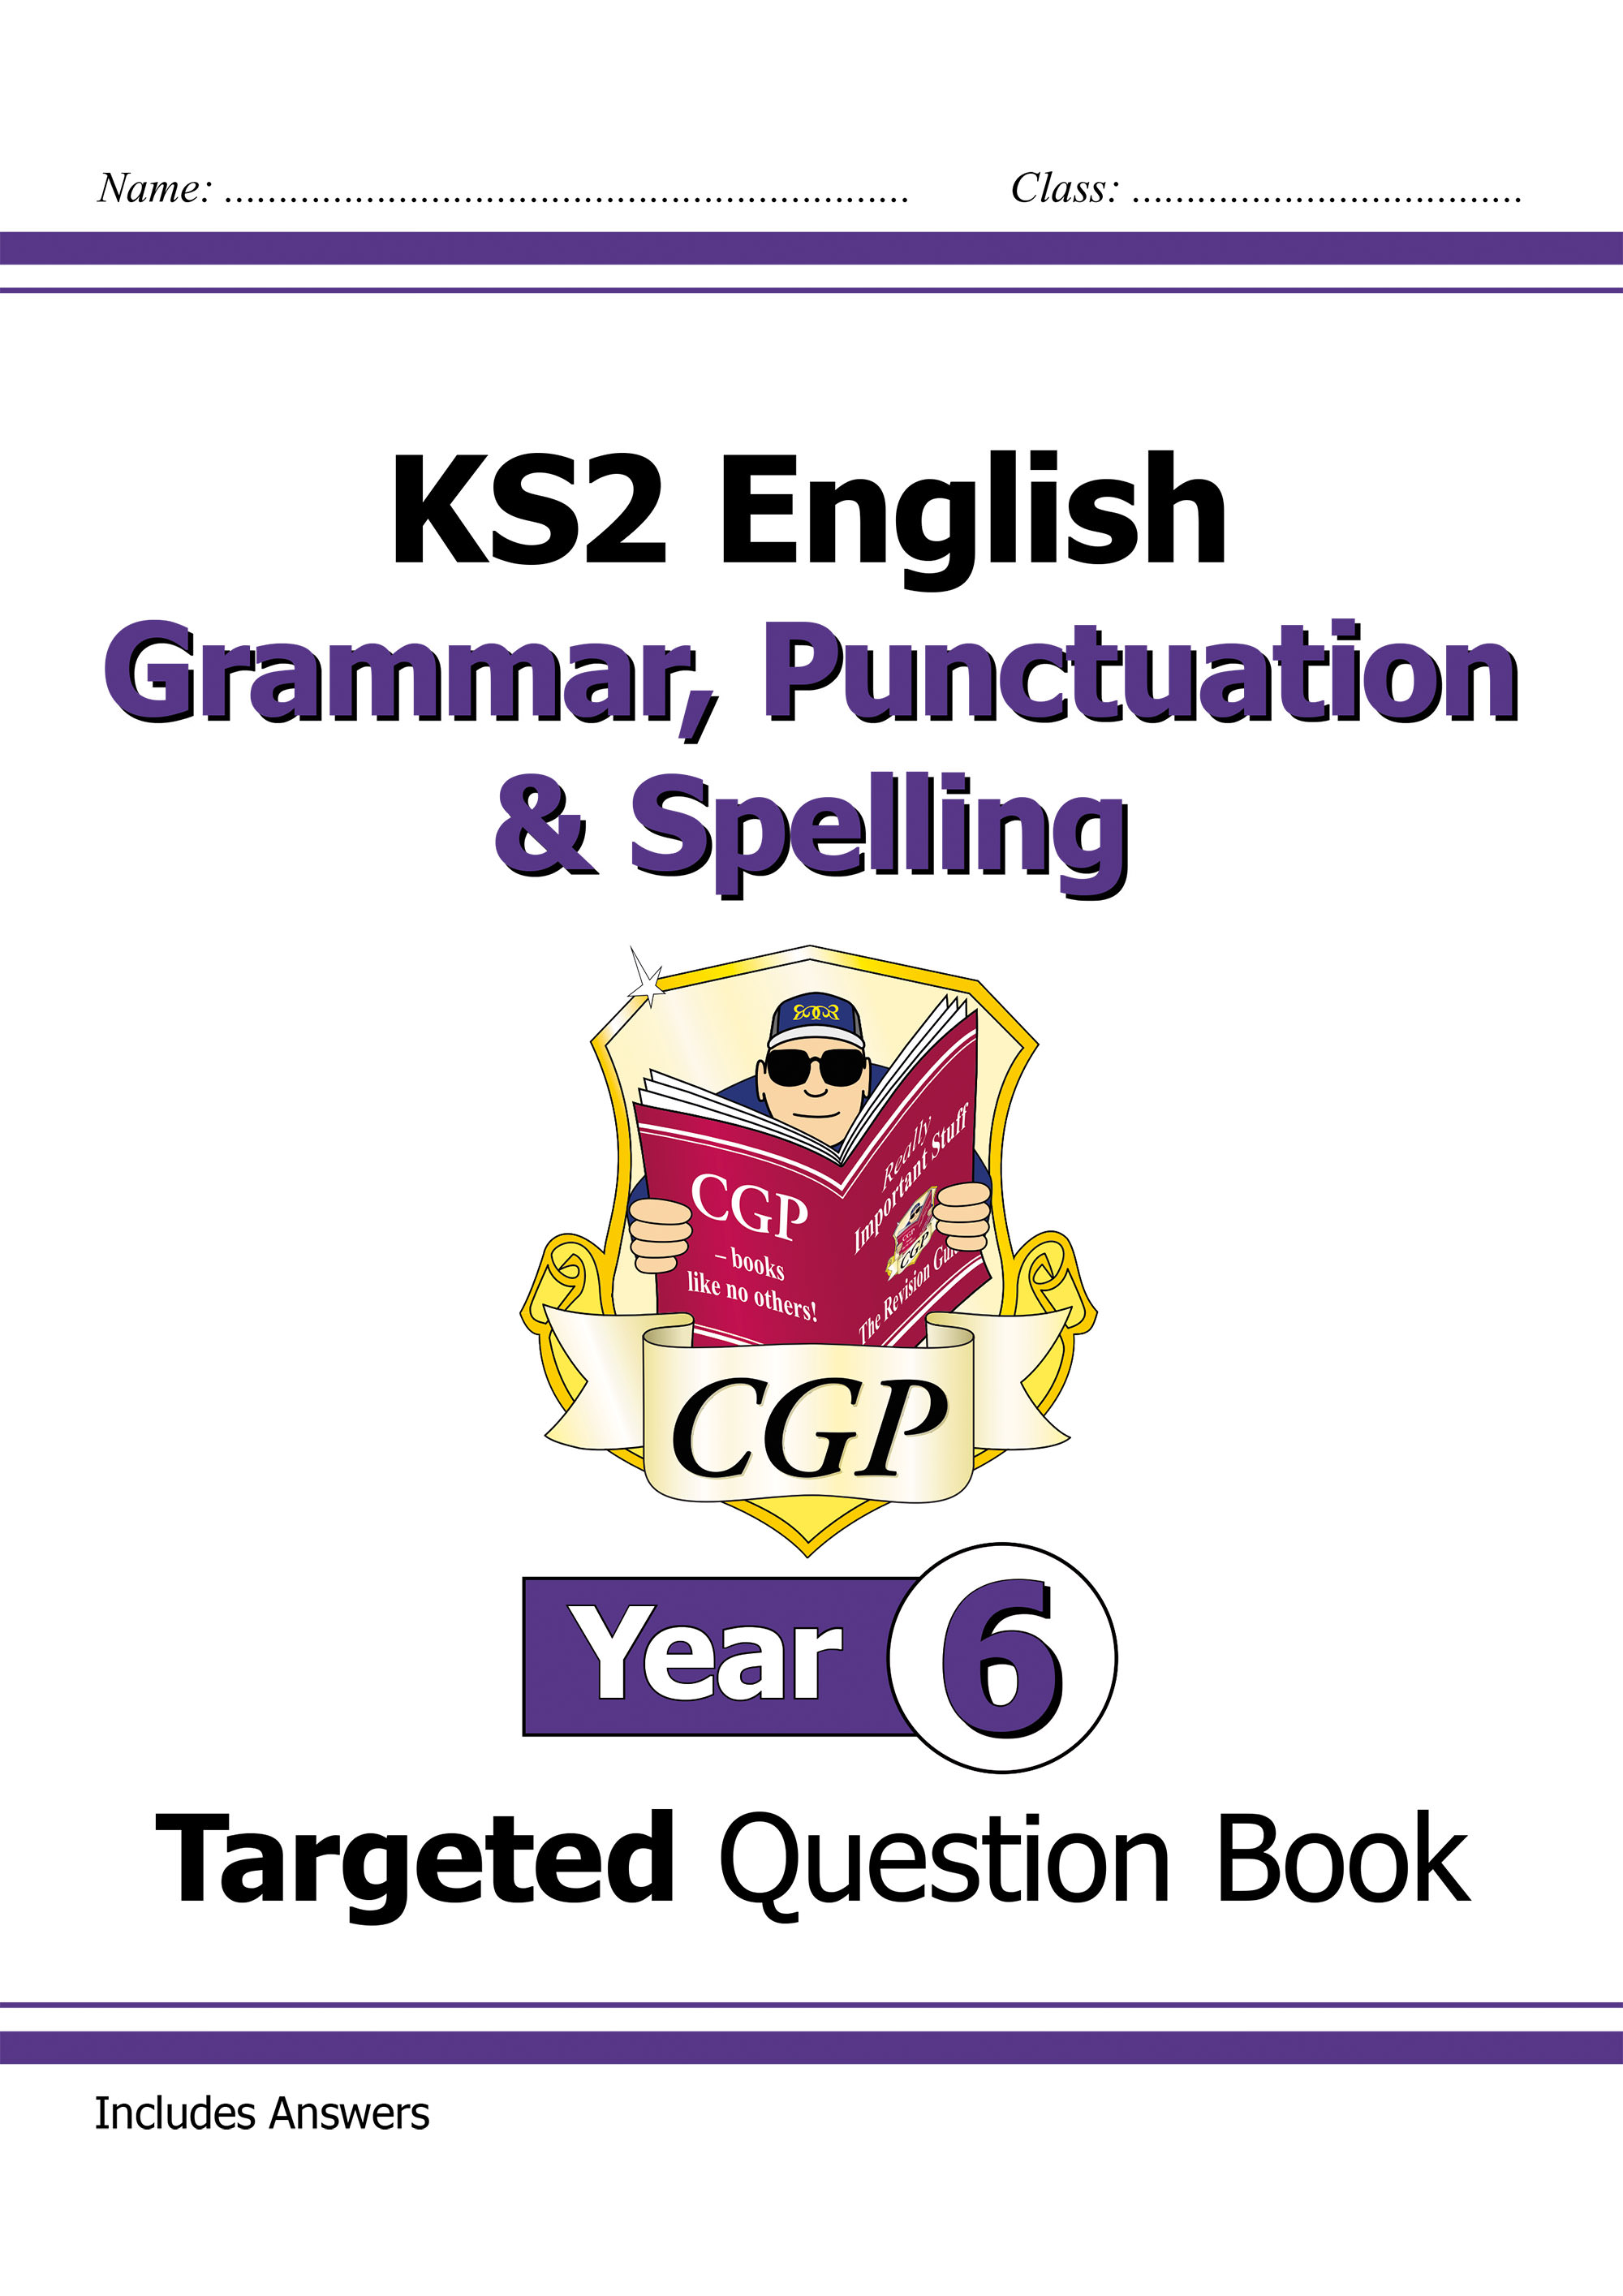 E6W22DK - KS2 English Targeted Question Book: Grammar, Punctuation & Spelling - Year 6